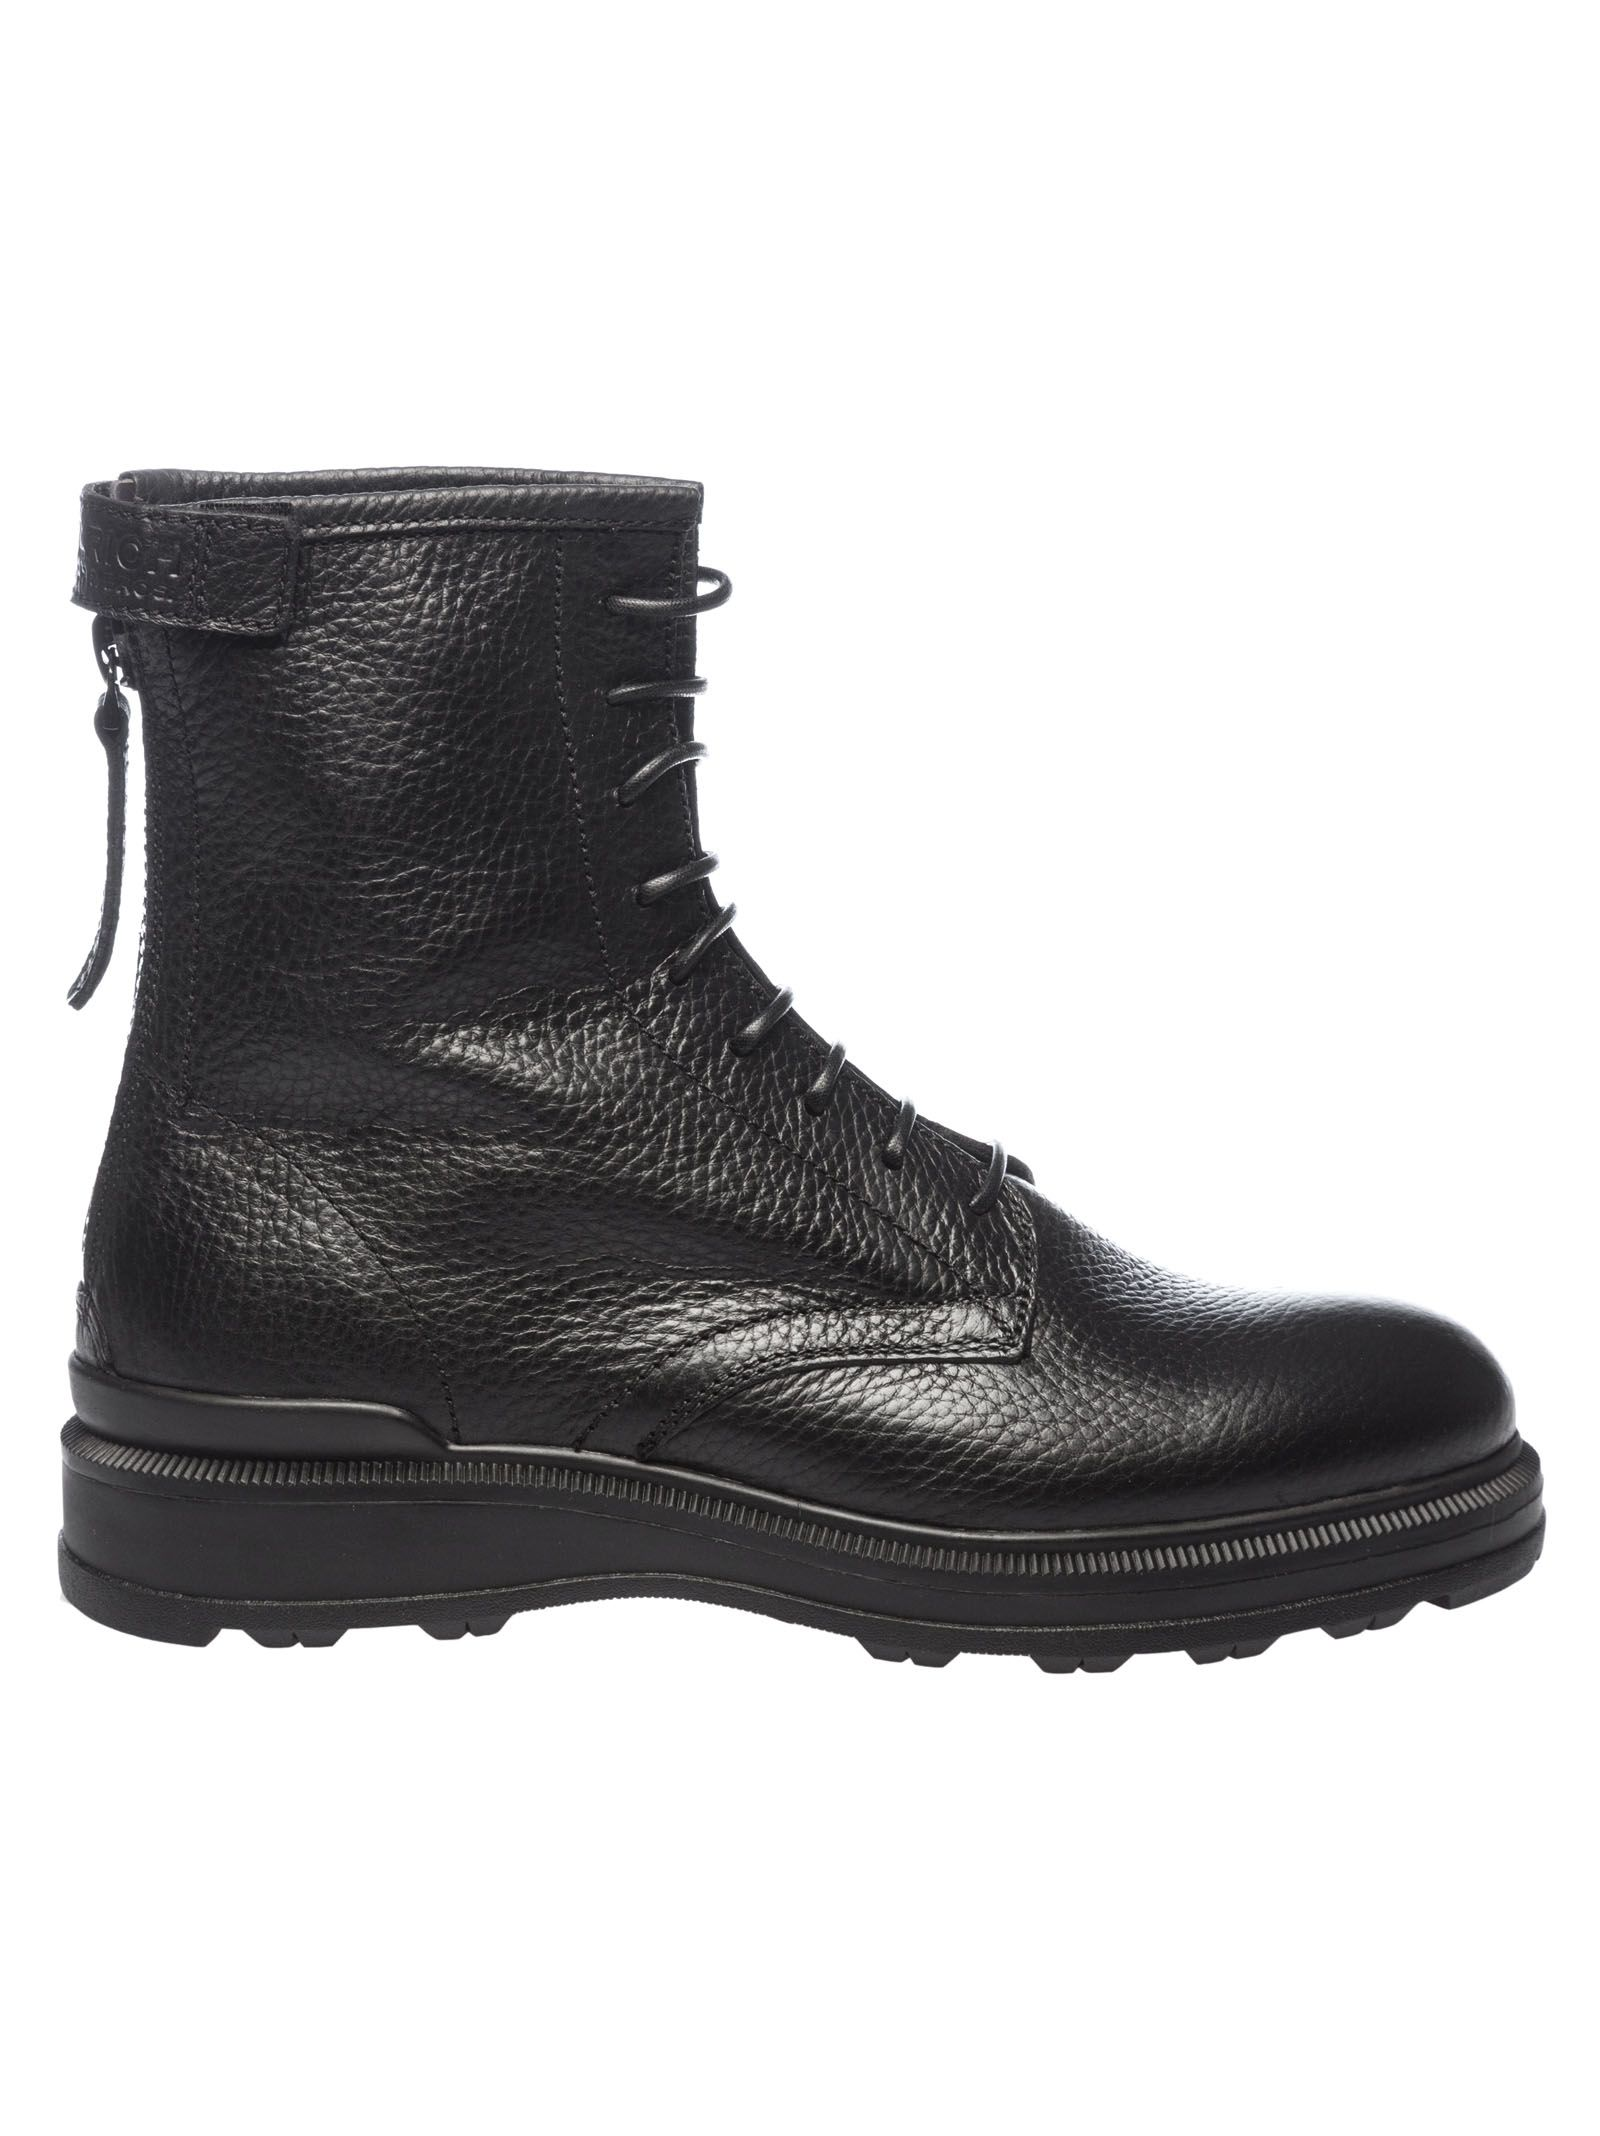 Woolrich Leathers HAMMERED LACED-UP ANKLE BOOTS